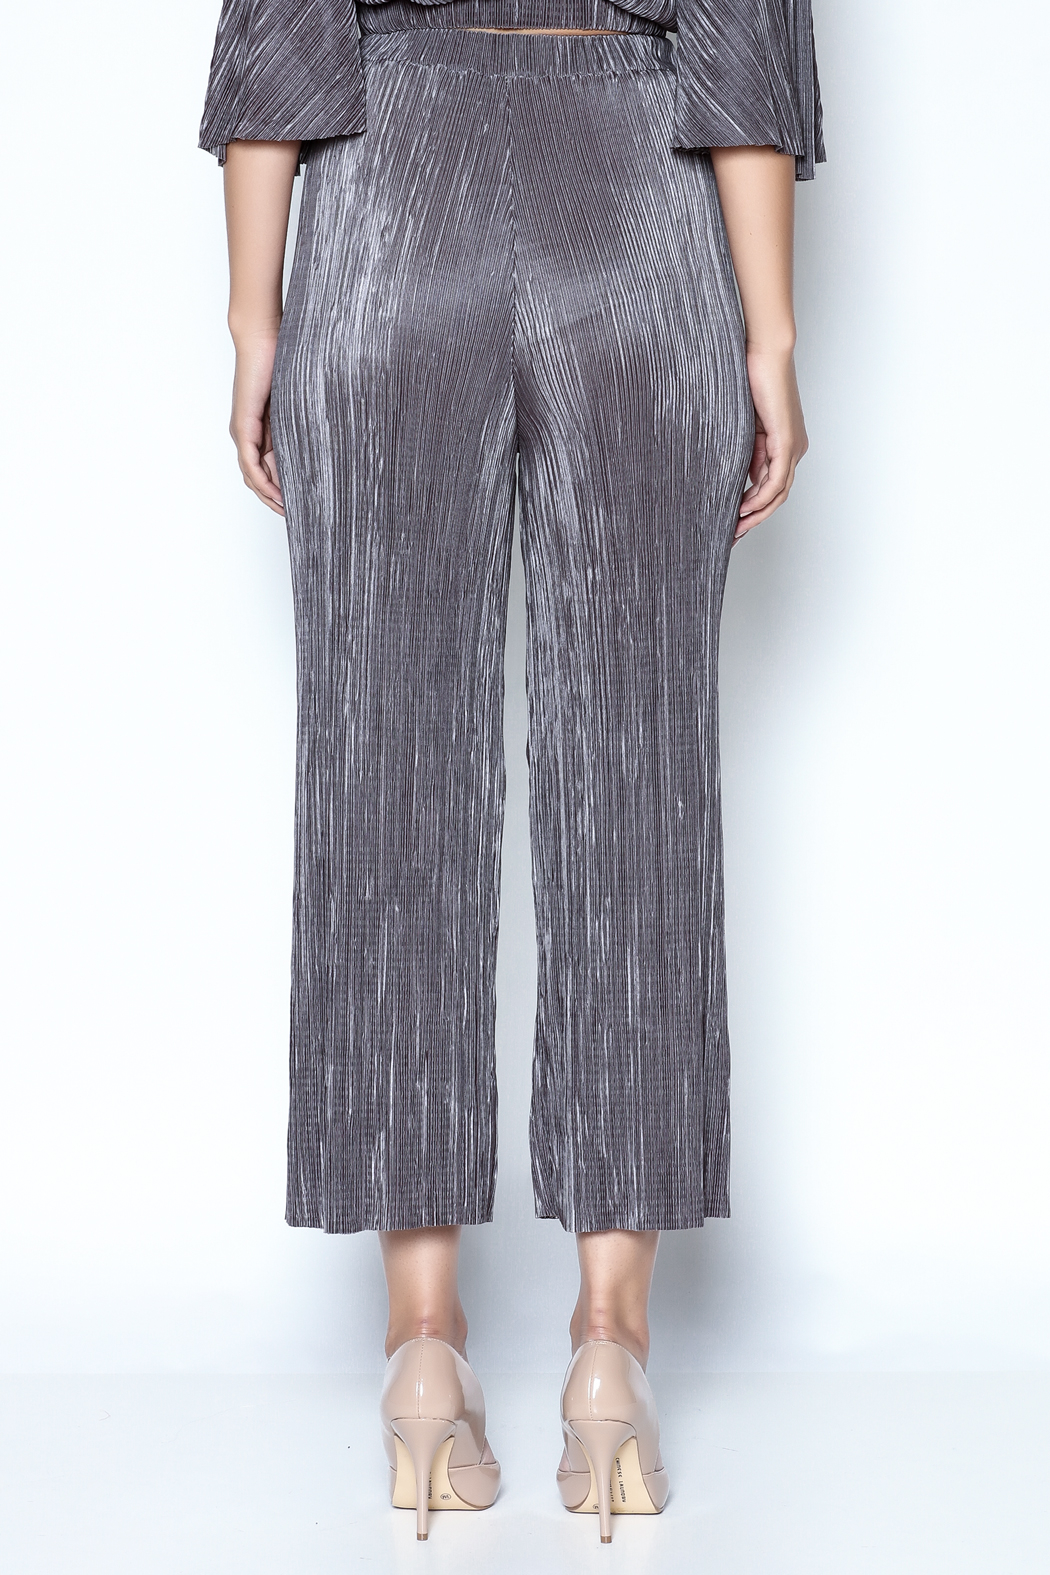 OH MY LOVE Tulbaghia Pleat Culottes - Back Cropped Image